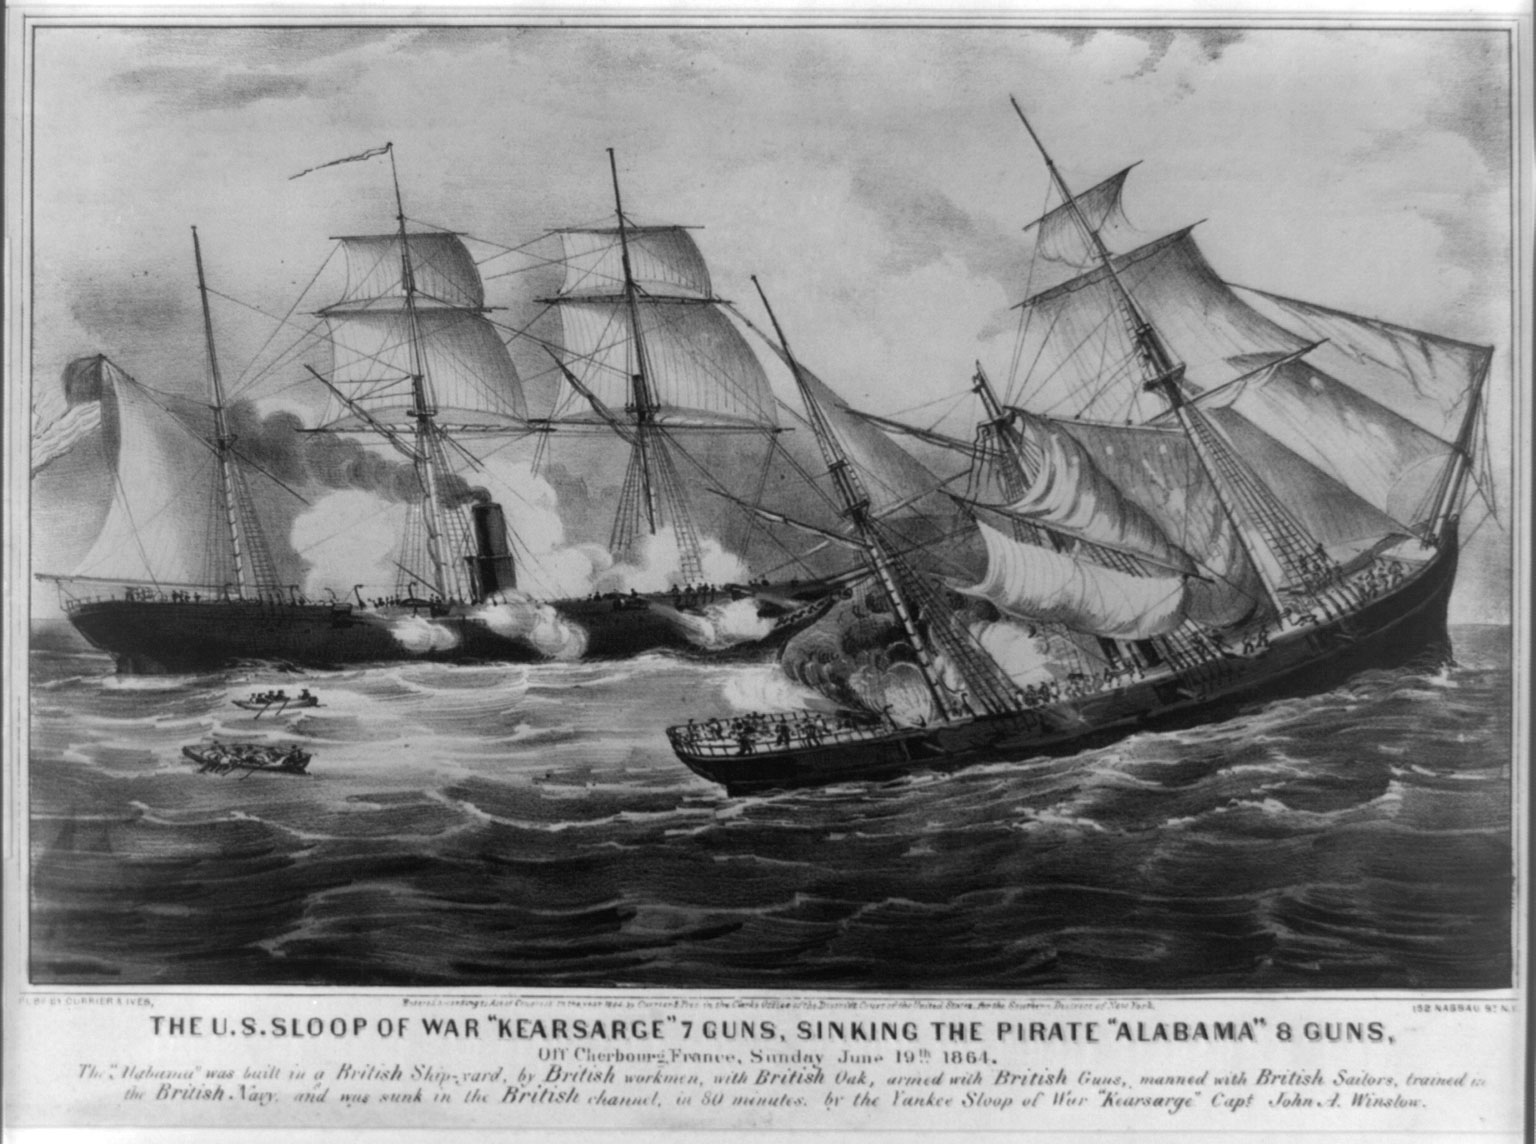 USS Kearsarge sinking the CSS Alabama, 1864 (source: Wikipedia)